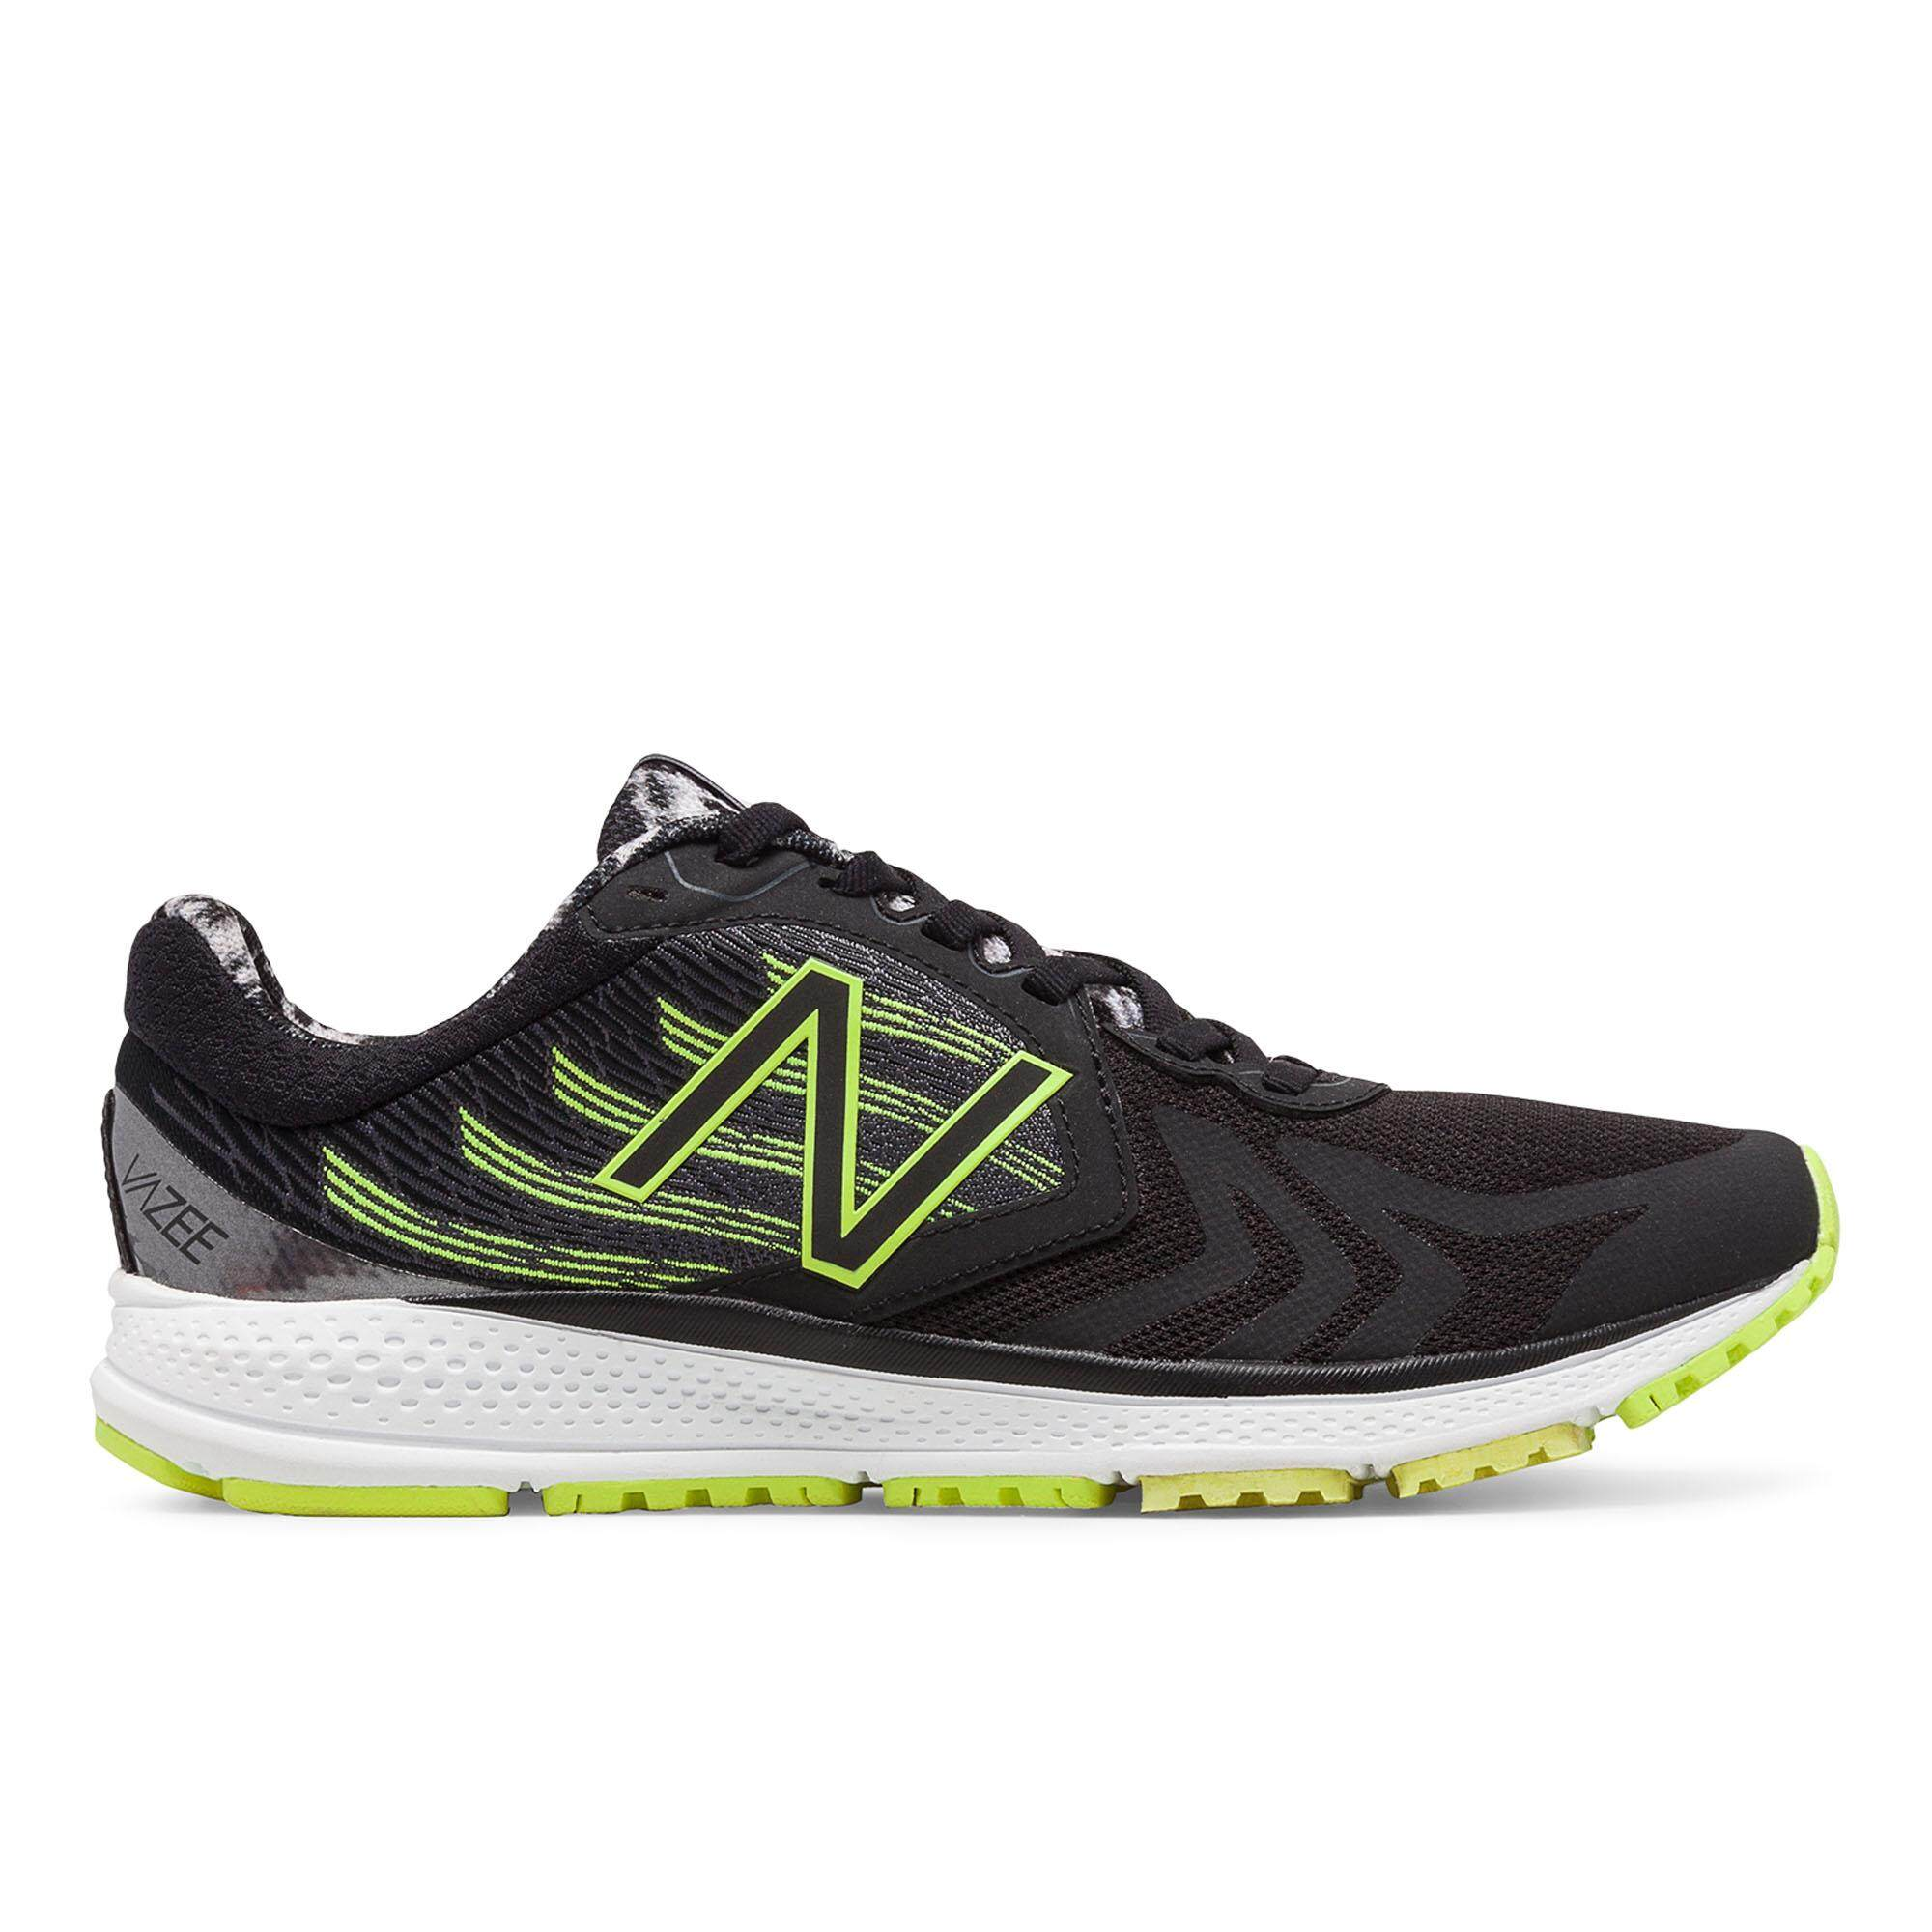 New Balance Official Store - Buy New Balance Official Store at Best ... a945af664a